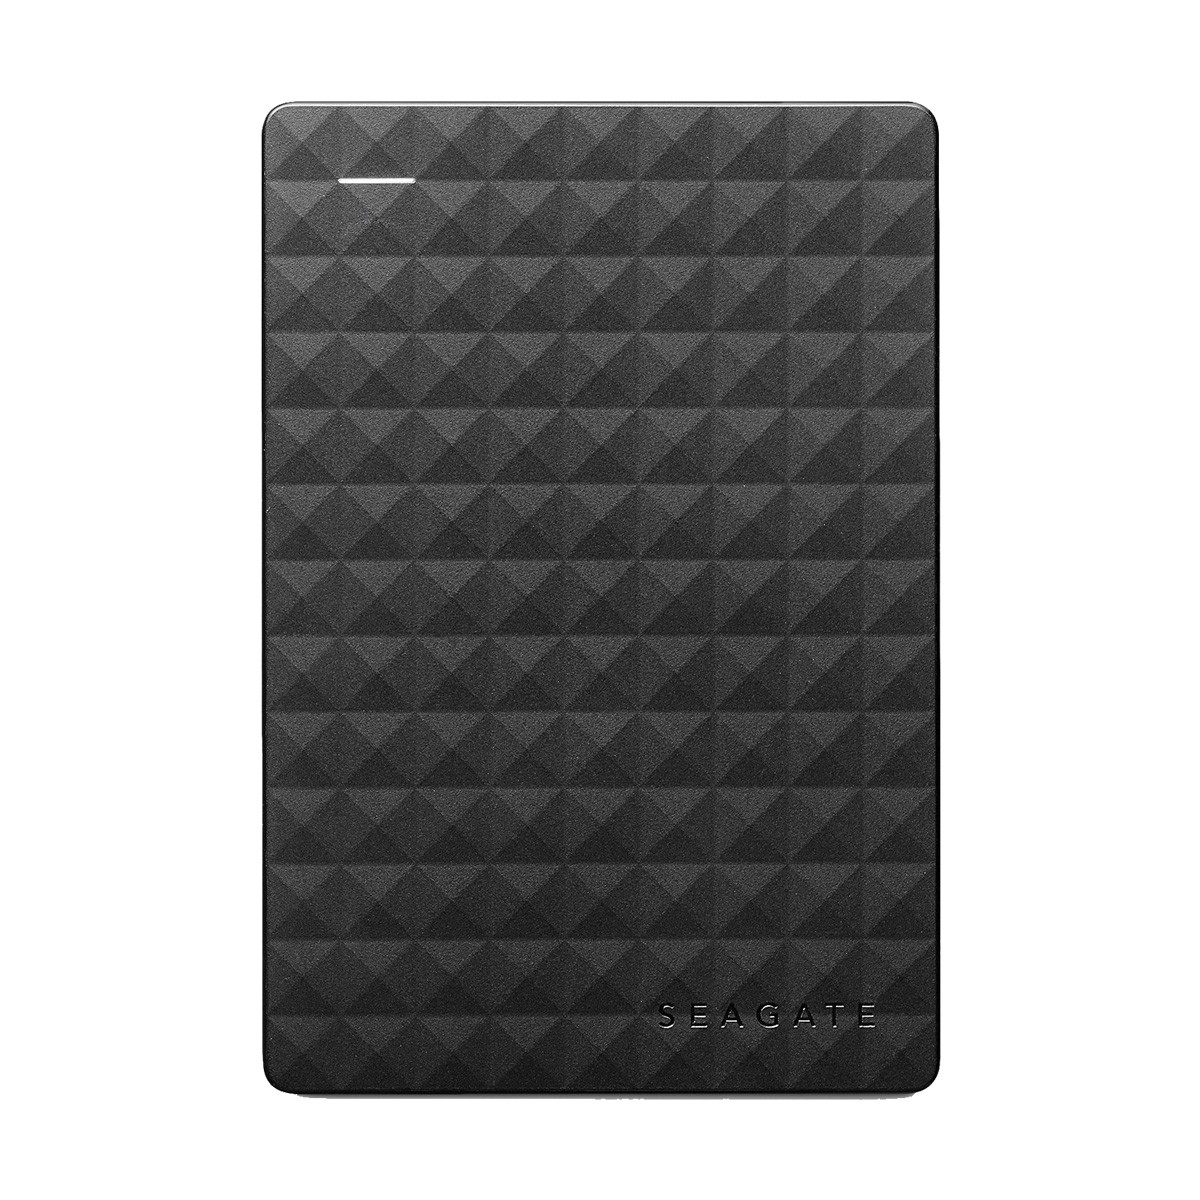 "Expansion Portable Drive 2.5"" 2TB USB 3.0 Seagate STEA2000400 image"